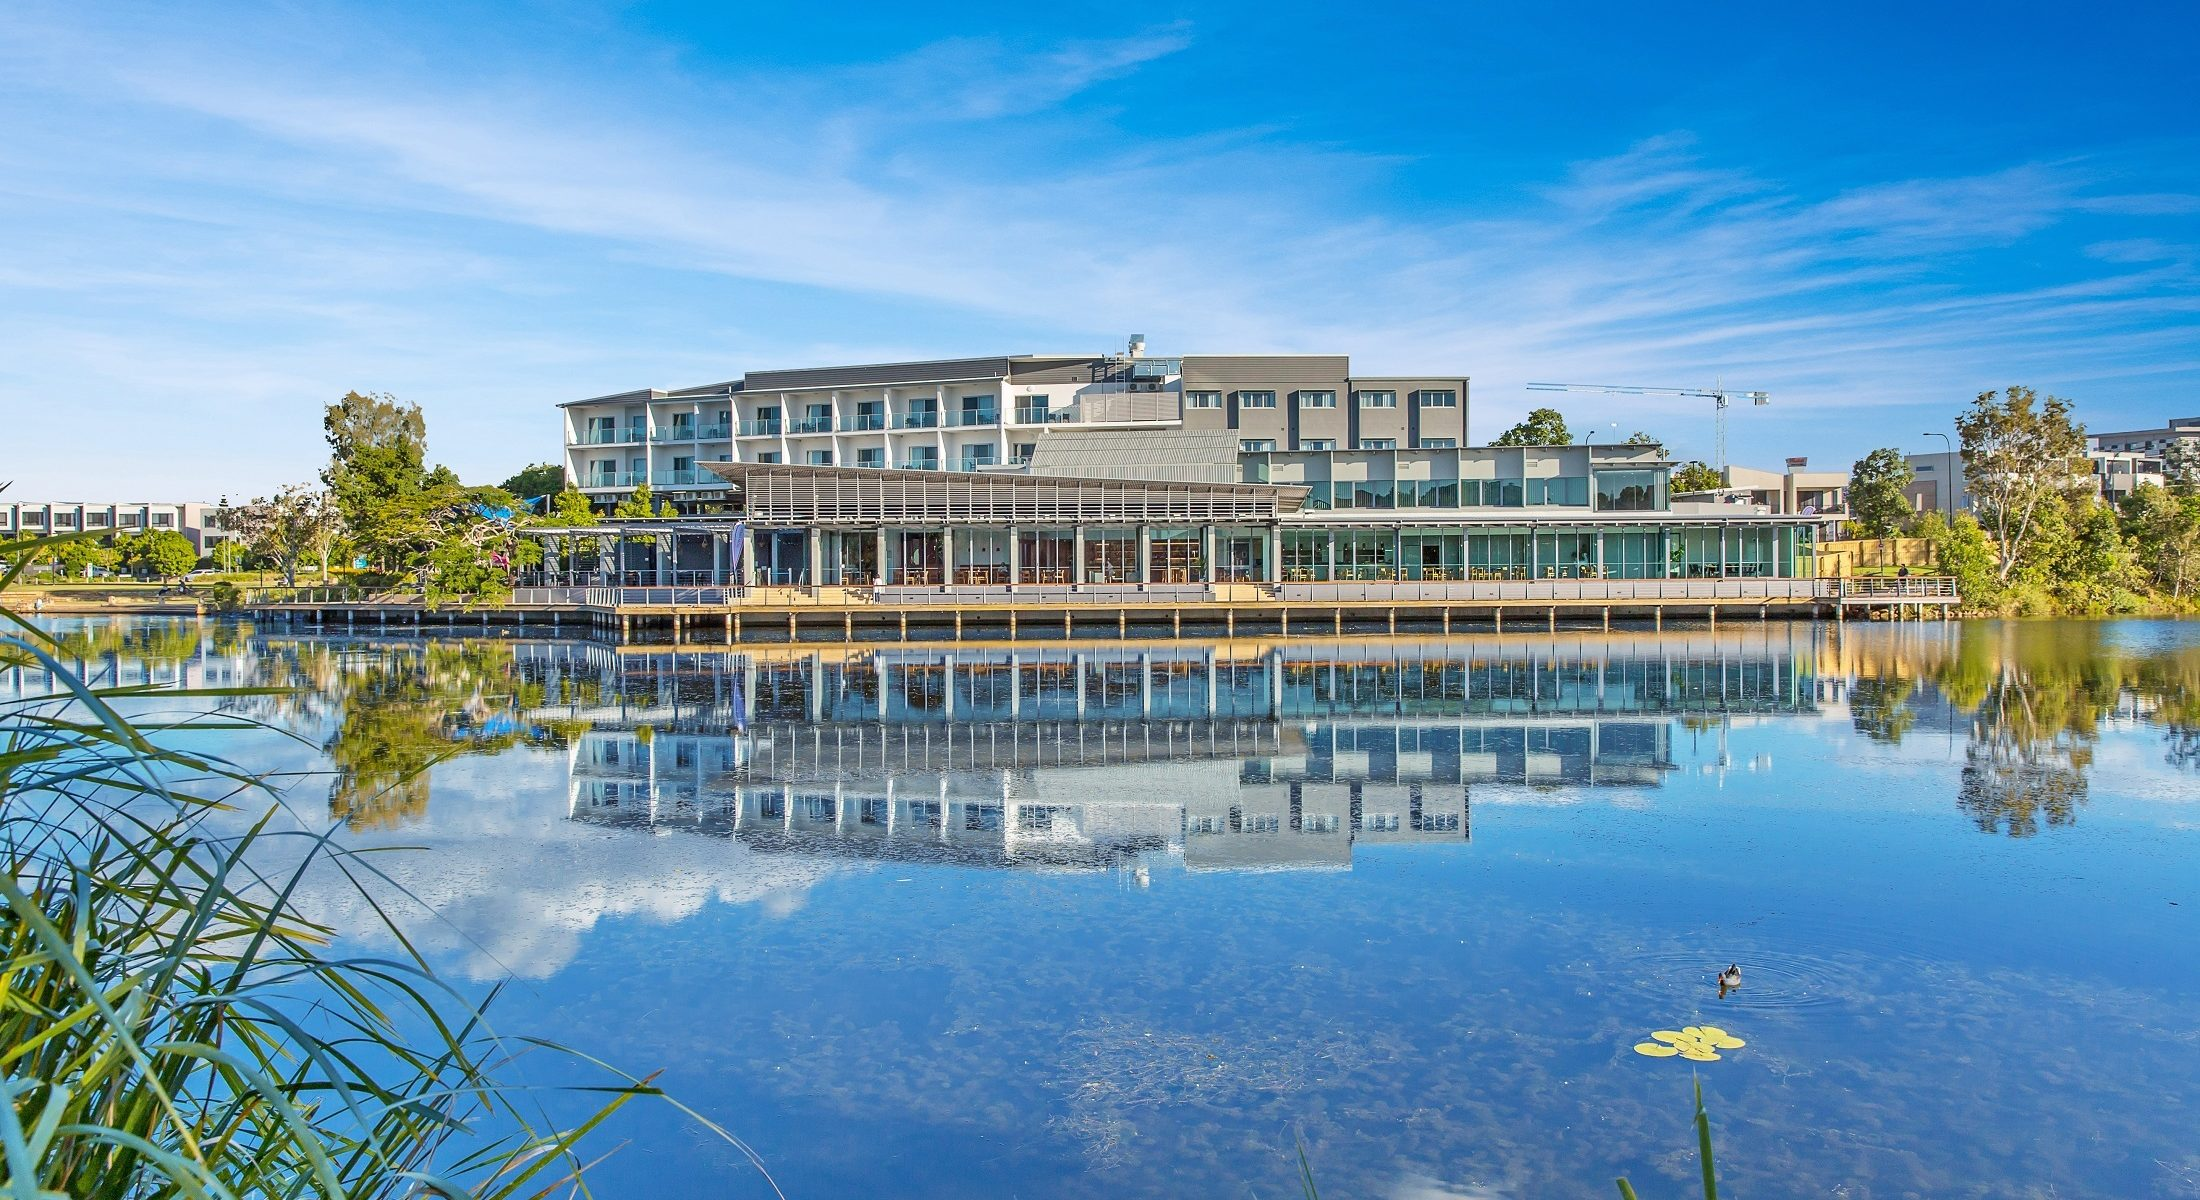 North lakes hotel lakeview visit moreton bay region